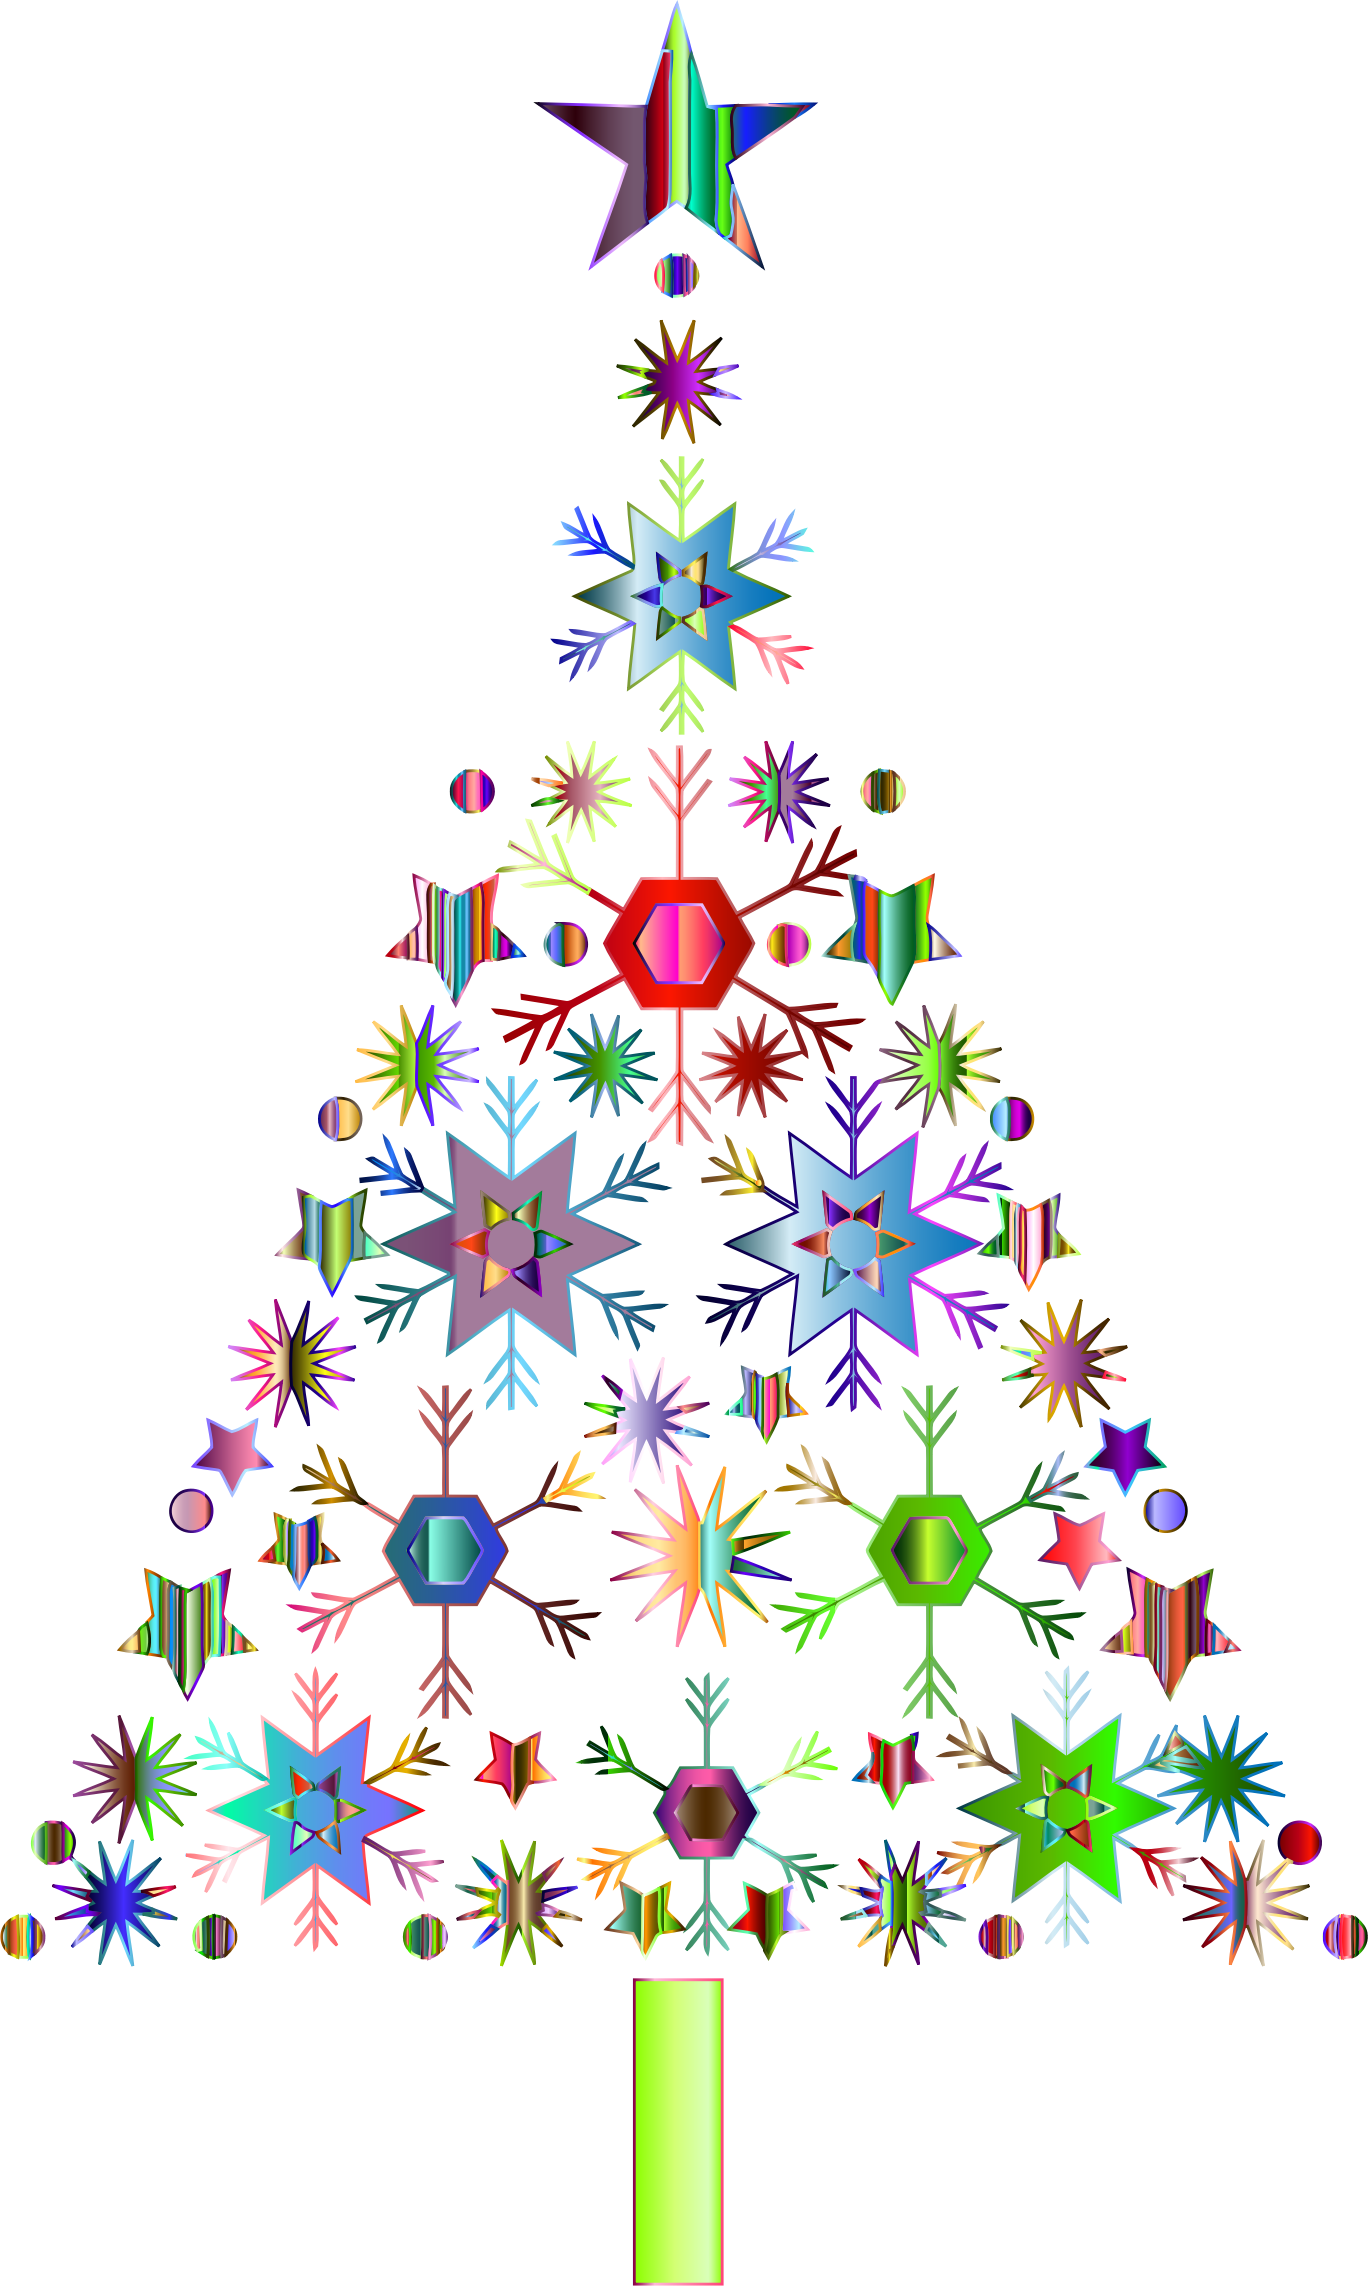 Abstract Snowflake Christmas Tree By Karen Arnold Prismatic 2 No Background By Gdj Amazing Christmas Trees Christmas Tree Pictures Christmas Tree Images